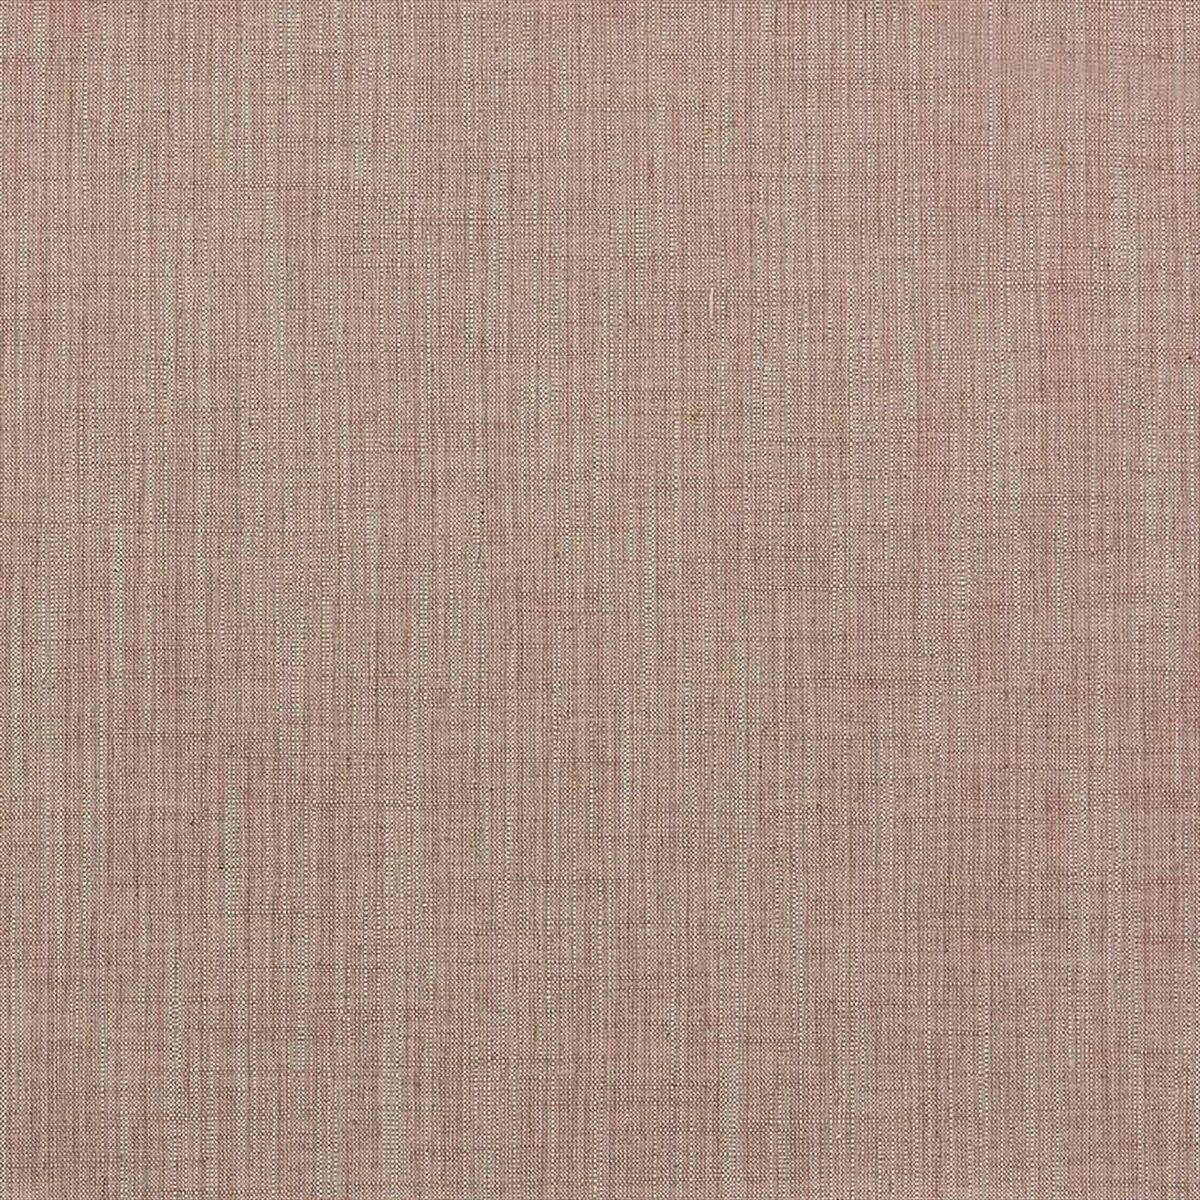 1595 Collection - Sunwashed Linen